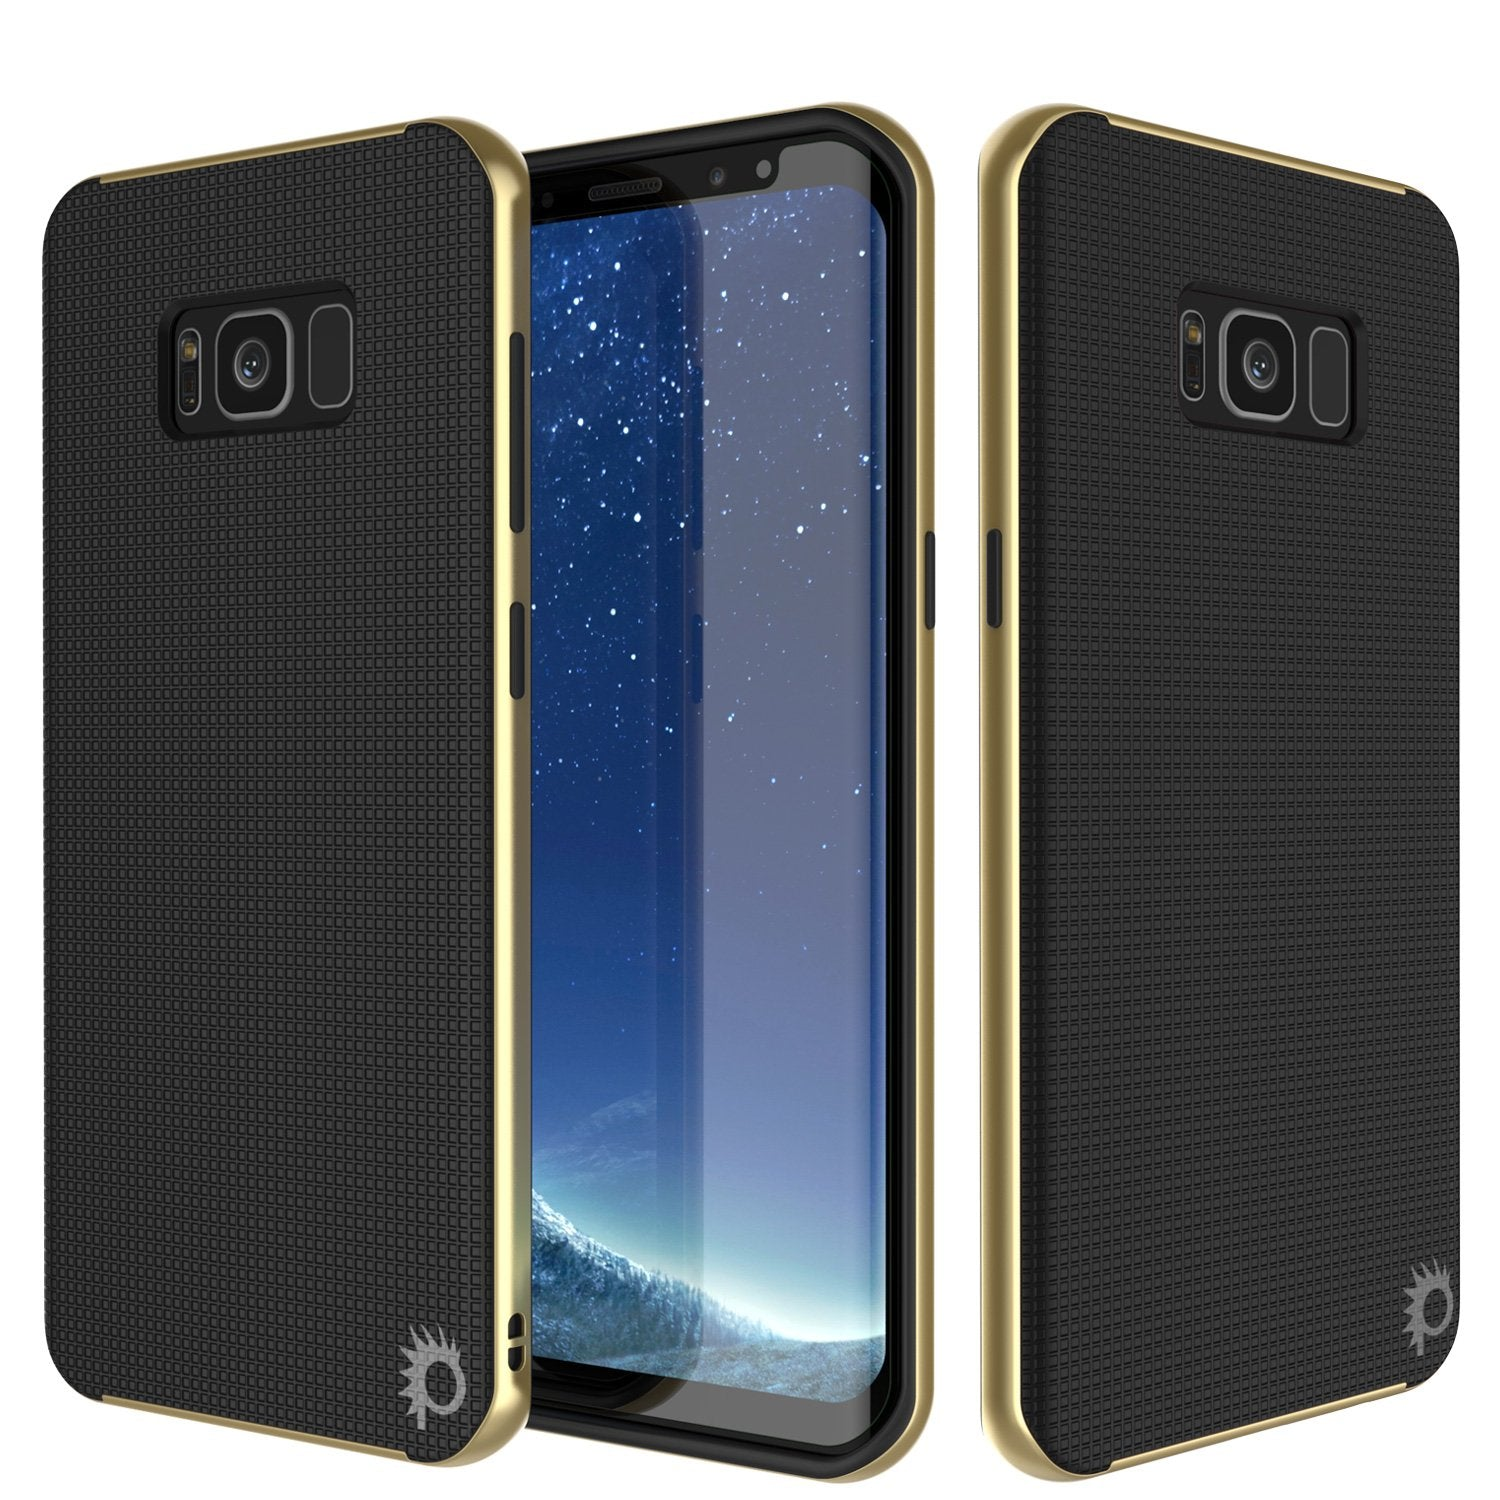 reputable site a0ac5 73632 Galaxy S8 Case, PunkCase Stealth Gold Series Hybrid 3-Piece ...